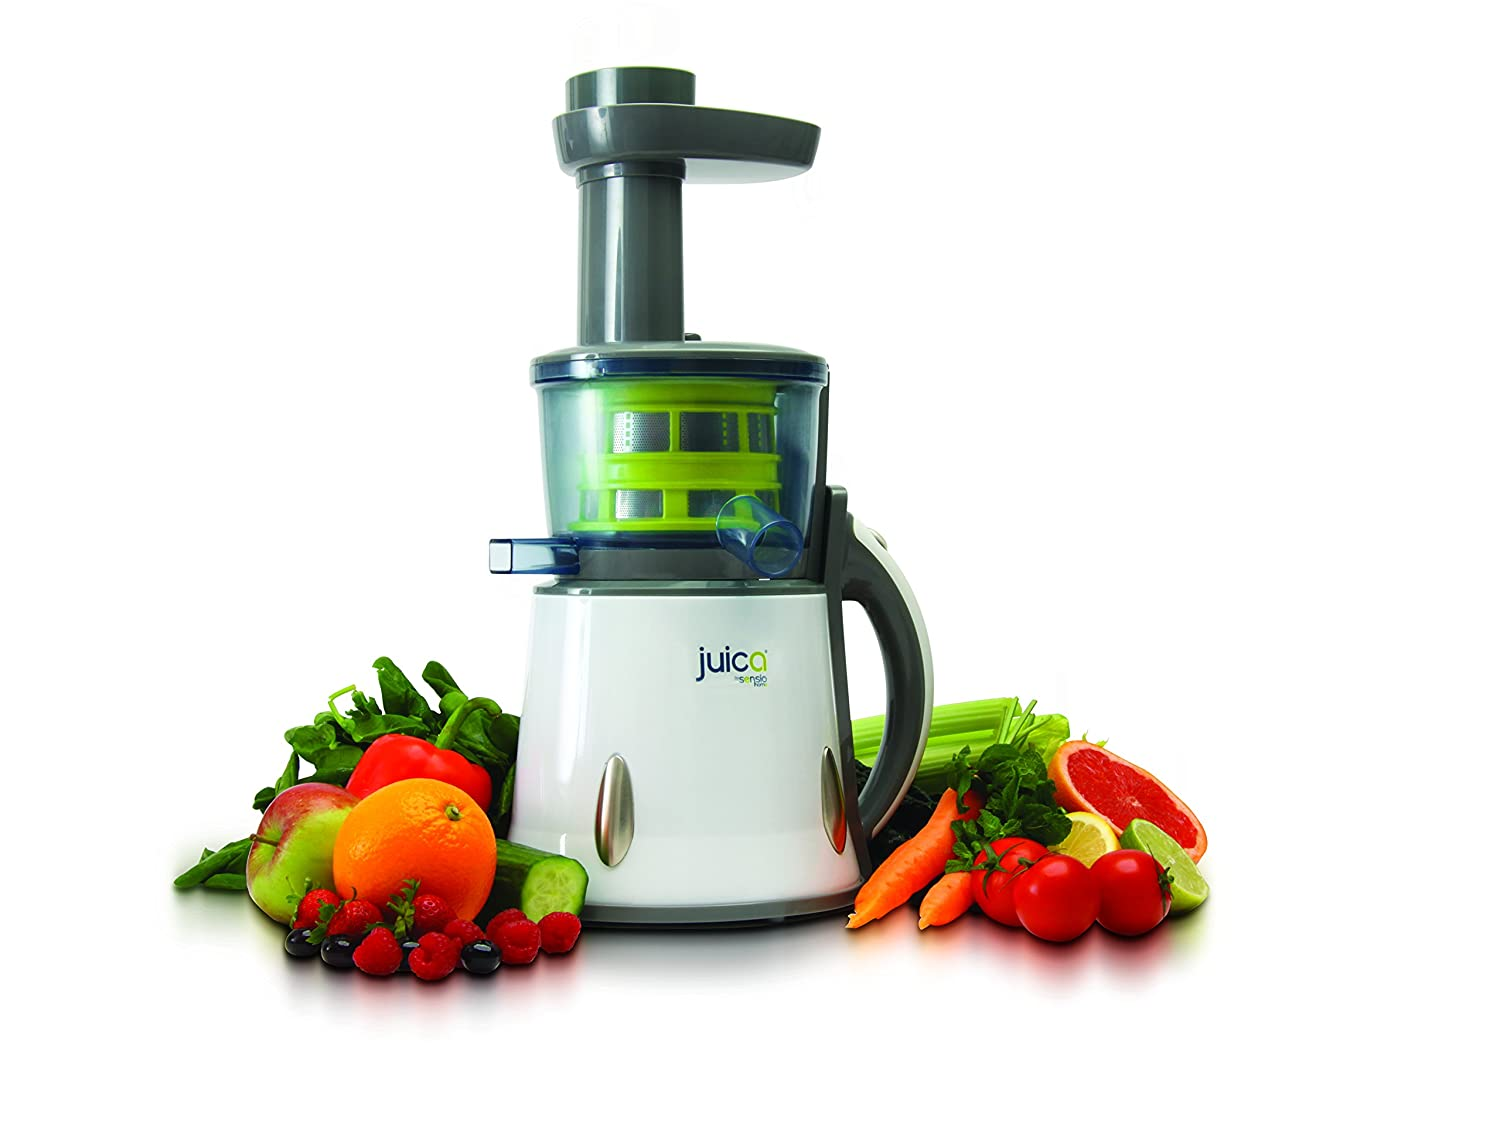 Juica Cold Press Electric Masticating Slow Juicer - Get 40% More Juice From Fruits & Vegetables Like Citrus, Oranges, Wheatgrass, & Nuts MPL Home SHJU001